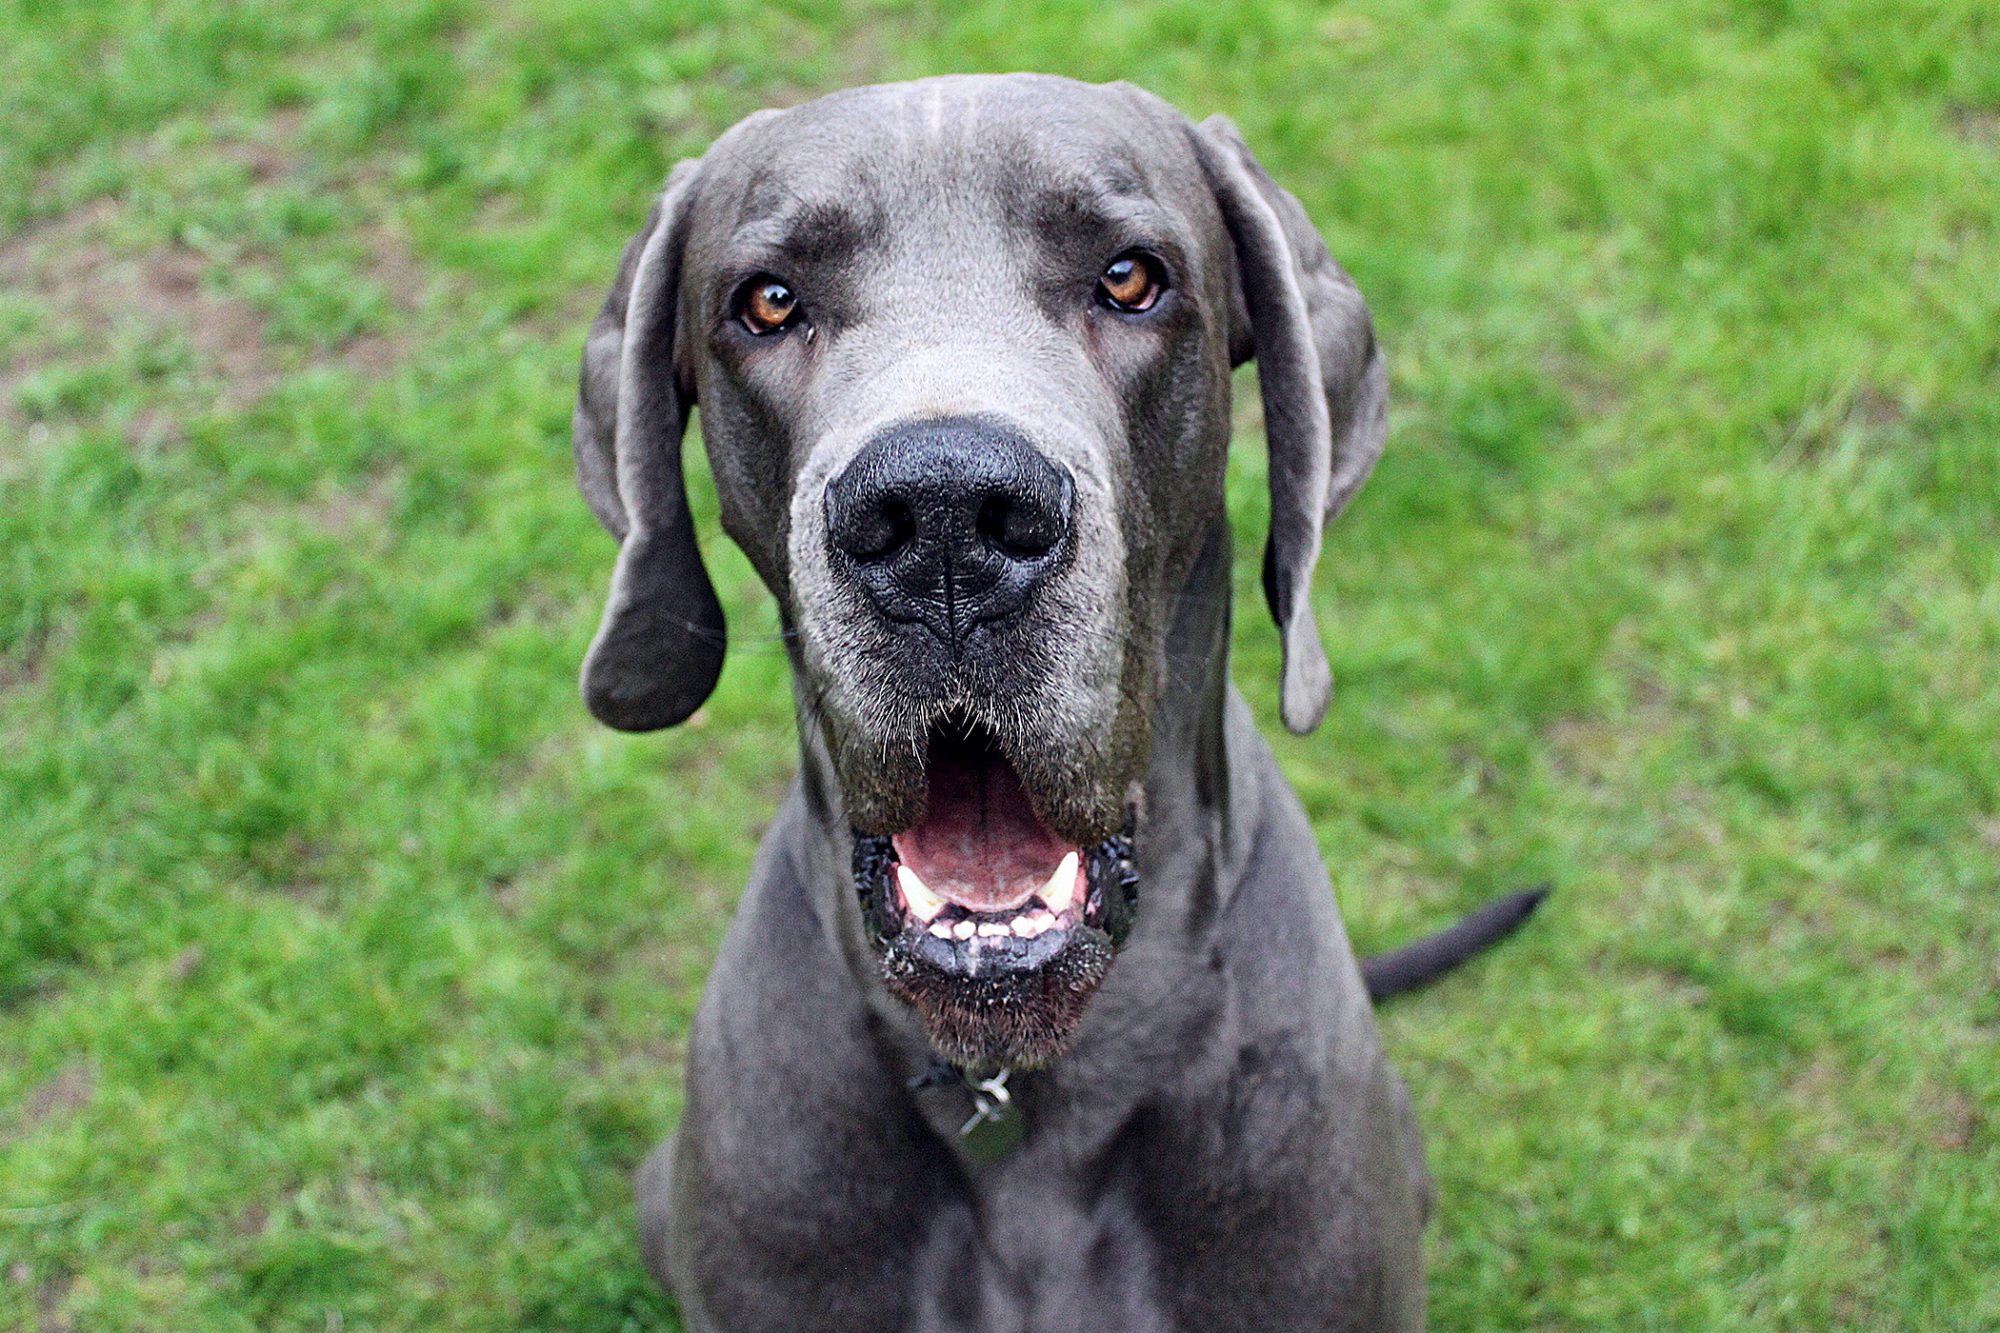 Large grey dog sitting in the grass looking at the camera